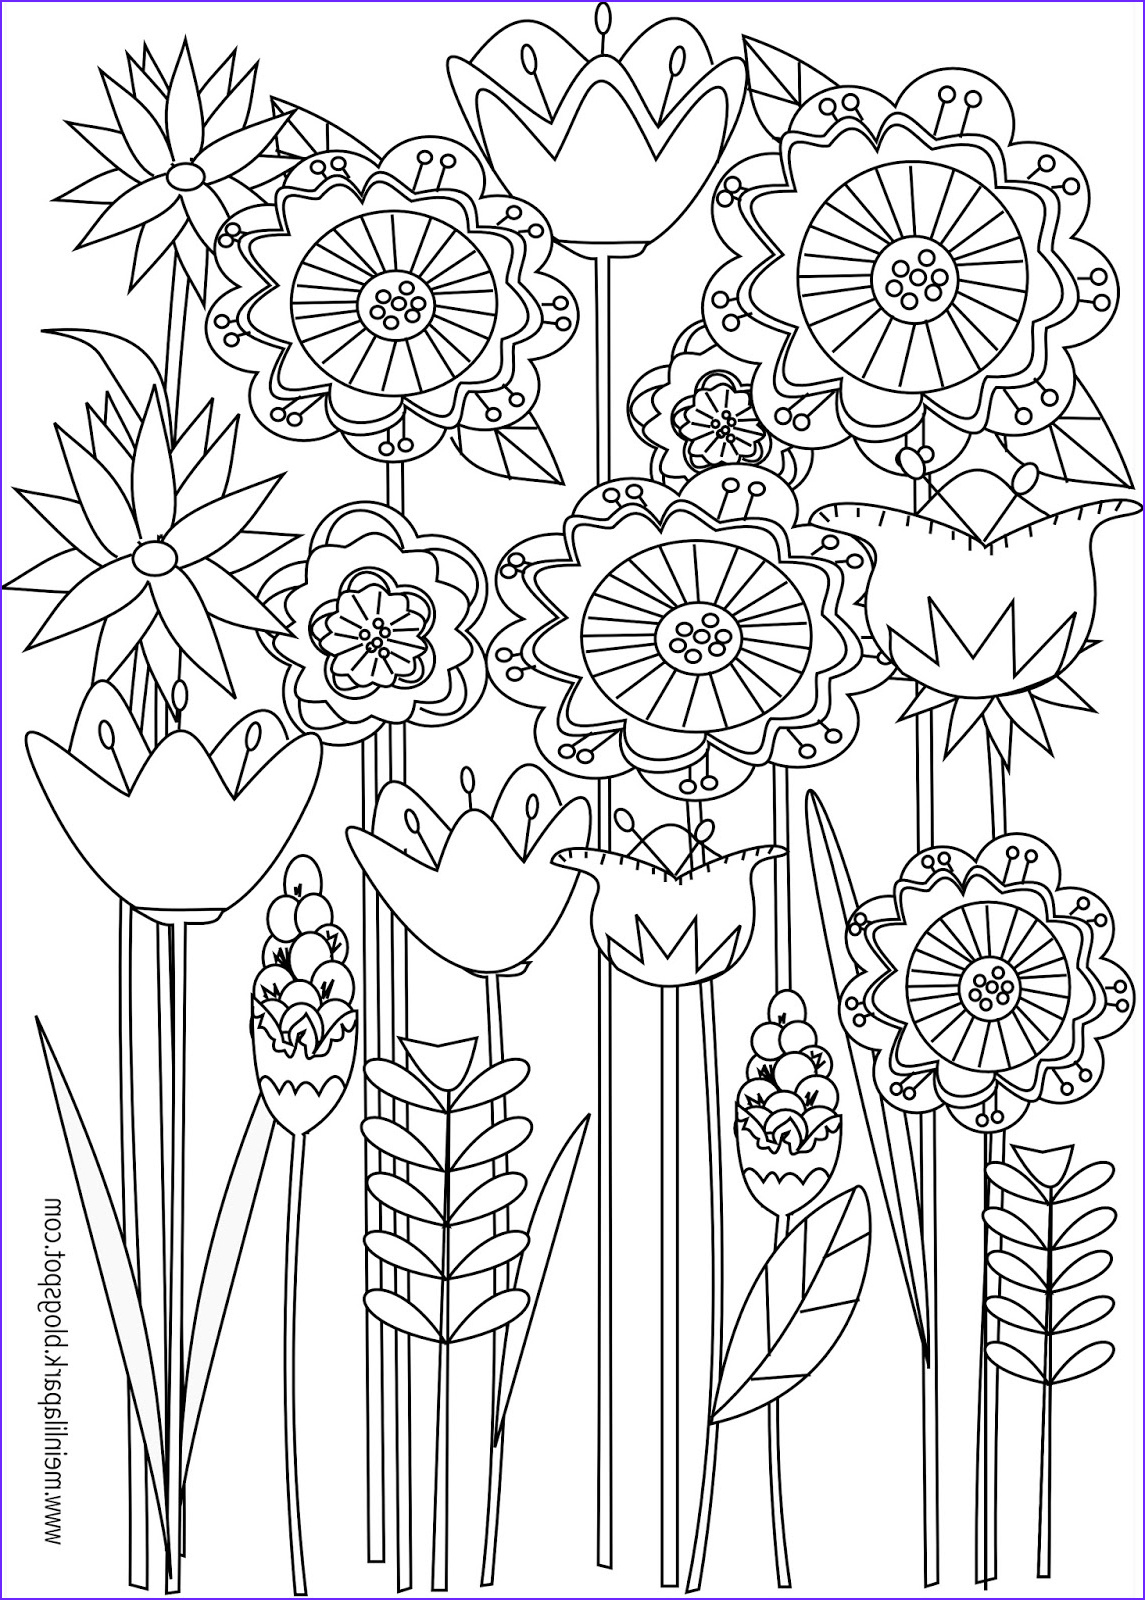 Adult Coloring Pages Flowers New Photos Free Printable Floral Coloring Page Ausdruckbare